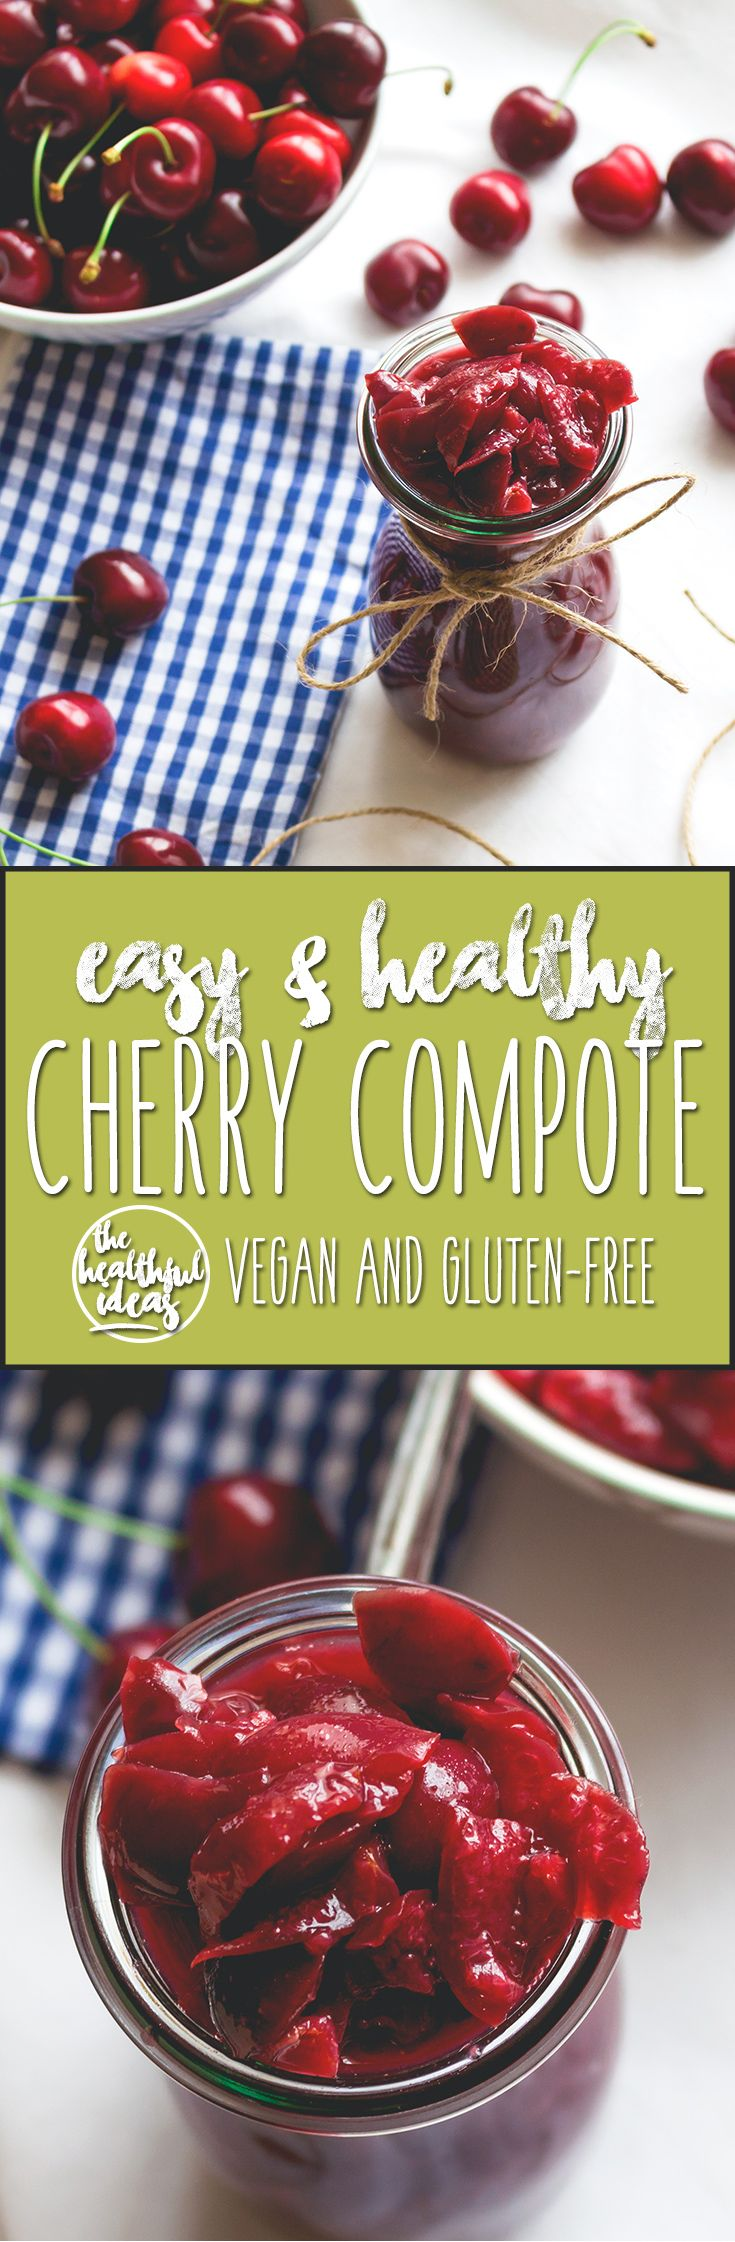 Cherry Compote - easy to make with only a couple ingredients! My family loves to make this recipe in the summer, so delicious! | thehealthfulideas.com